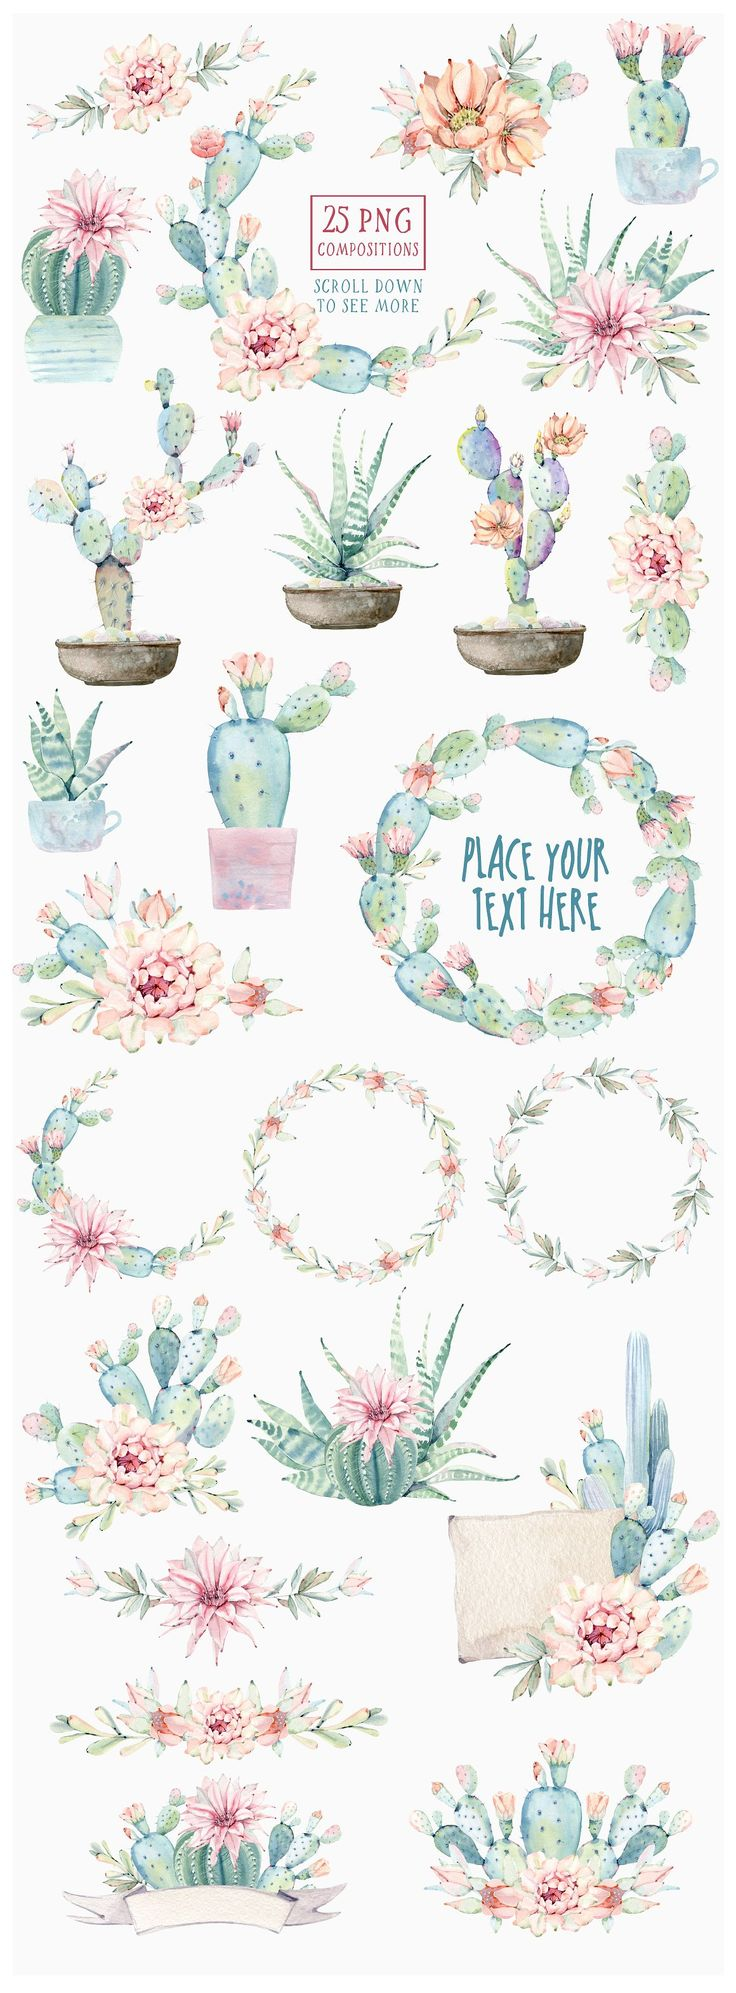 Watercolor Pastel Graphics | CACTUSES again and again  by Lemaris on Creative Ma…